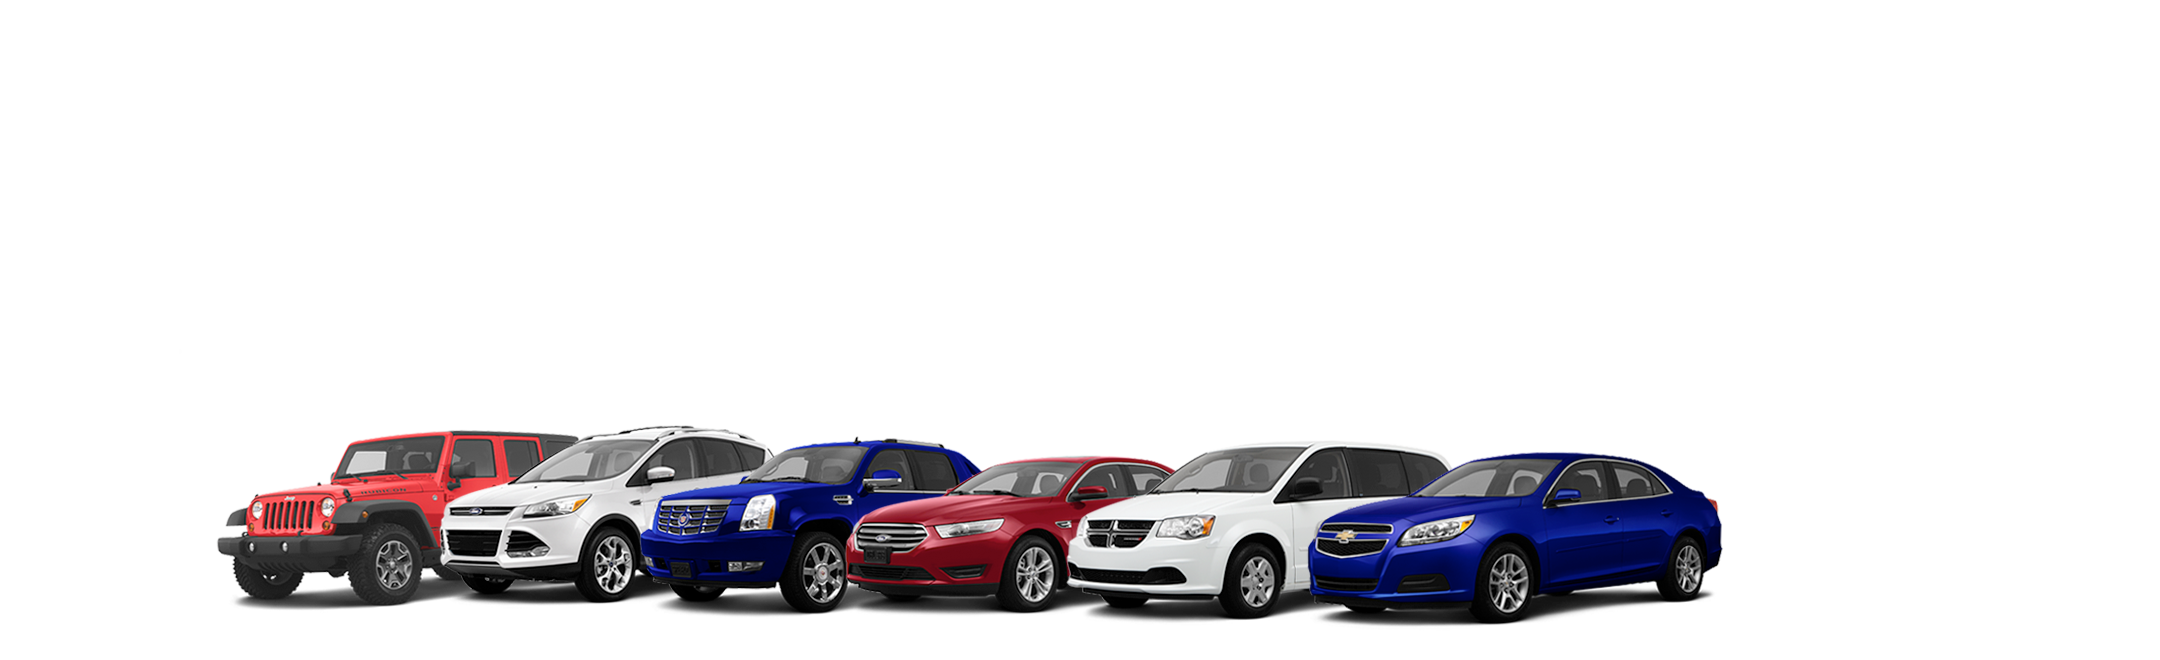 The Coolest In The Car Pool Used Cars Serving Houston In House - Used cars